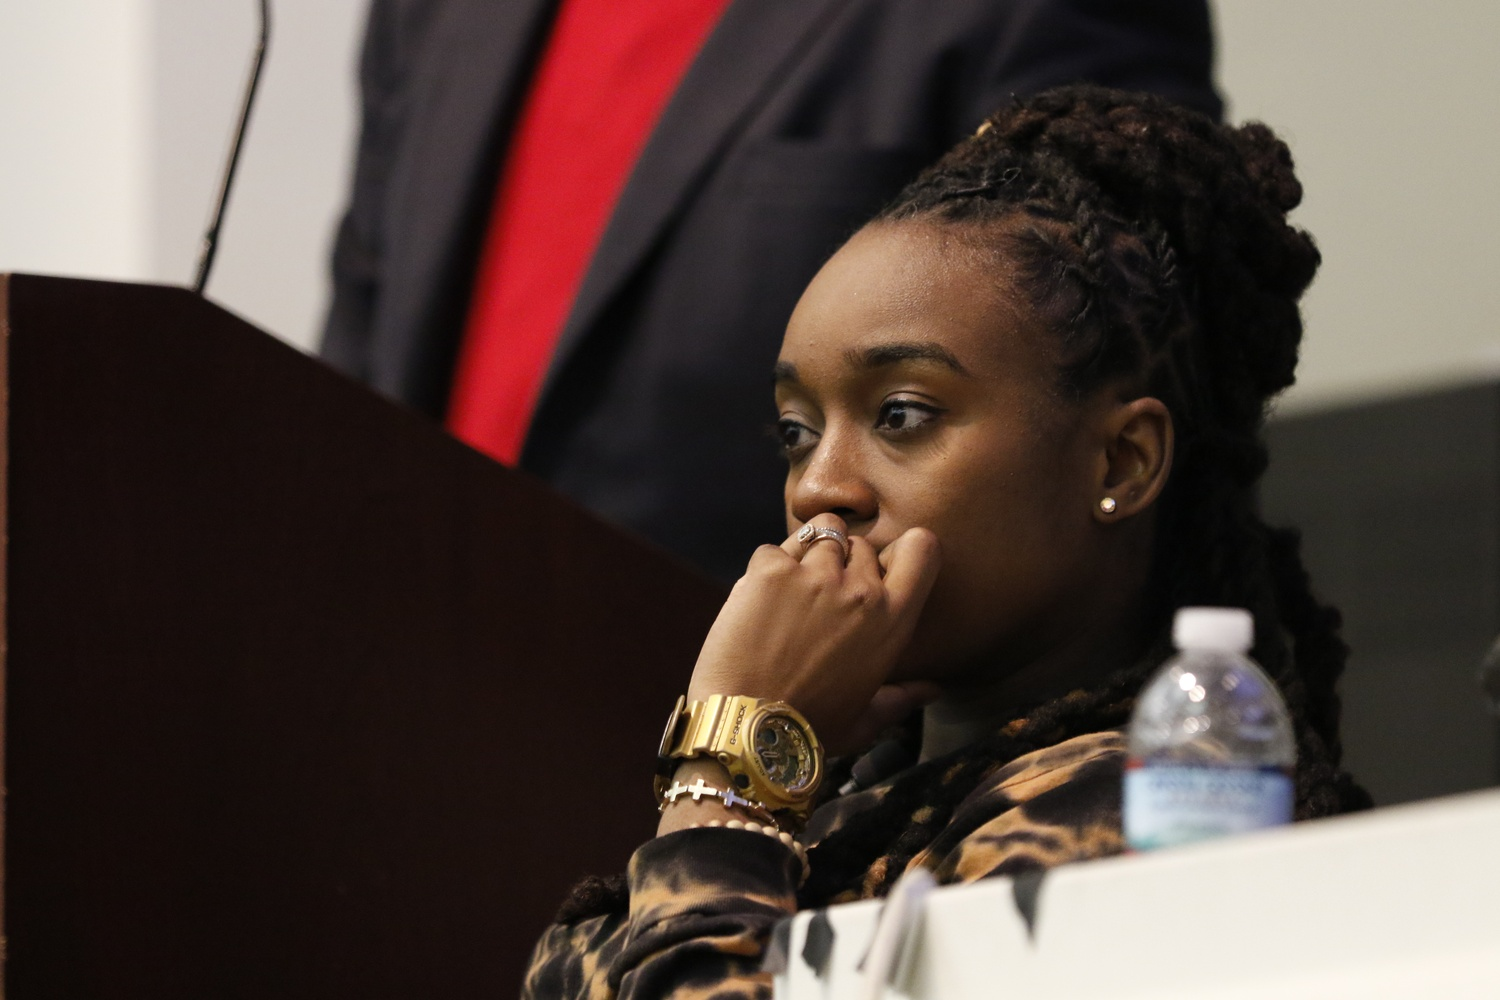 Jackie Hill-Perry listens as Reverend Jonathan L. Walton speaks at religious group Harvard College Faith and Action's meeting Friday night. Some students criticized HCFA's decision to invite Hill-Perry, an outspoken critic of homosexuality.